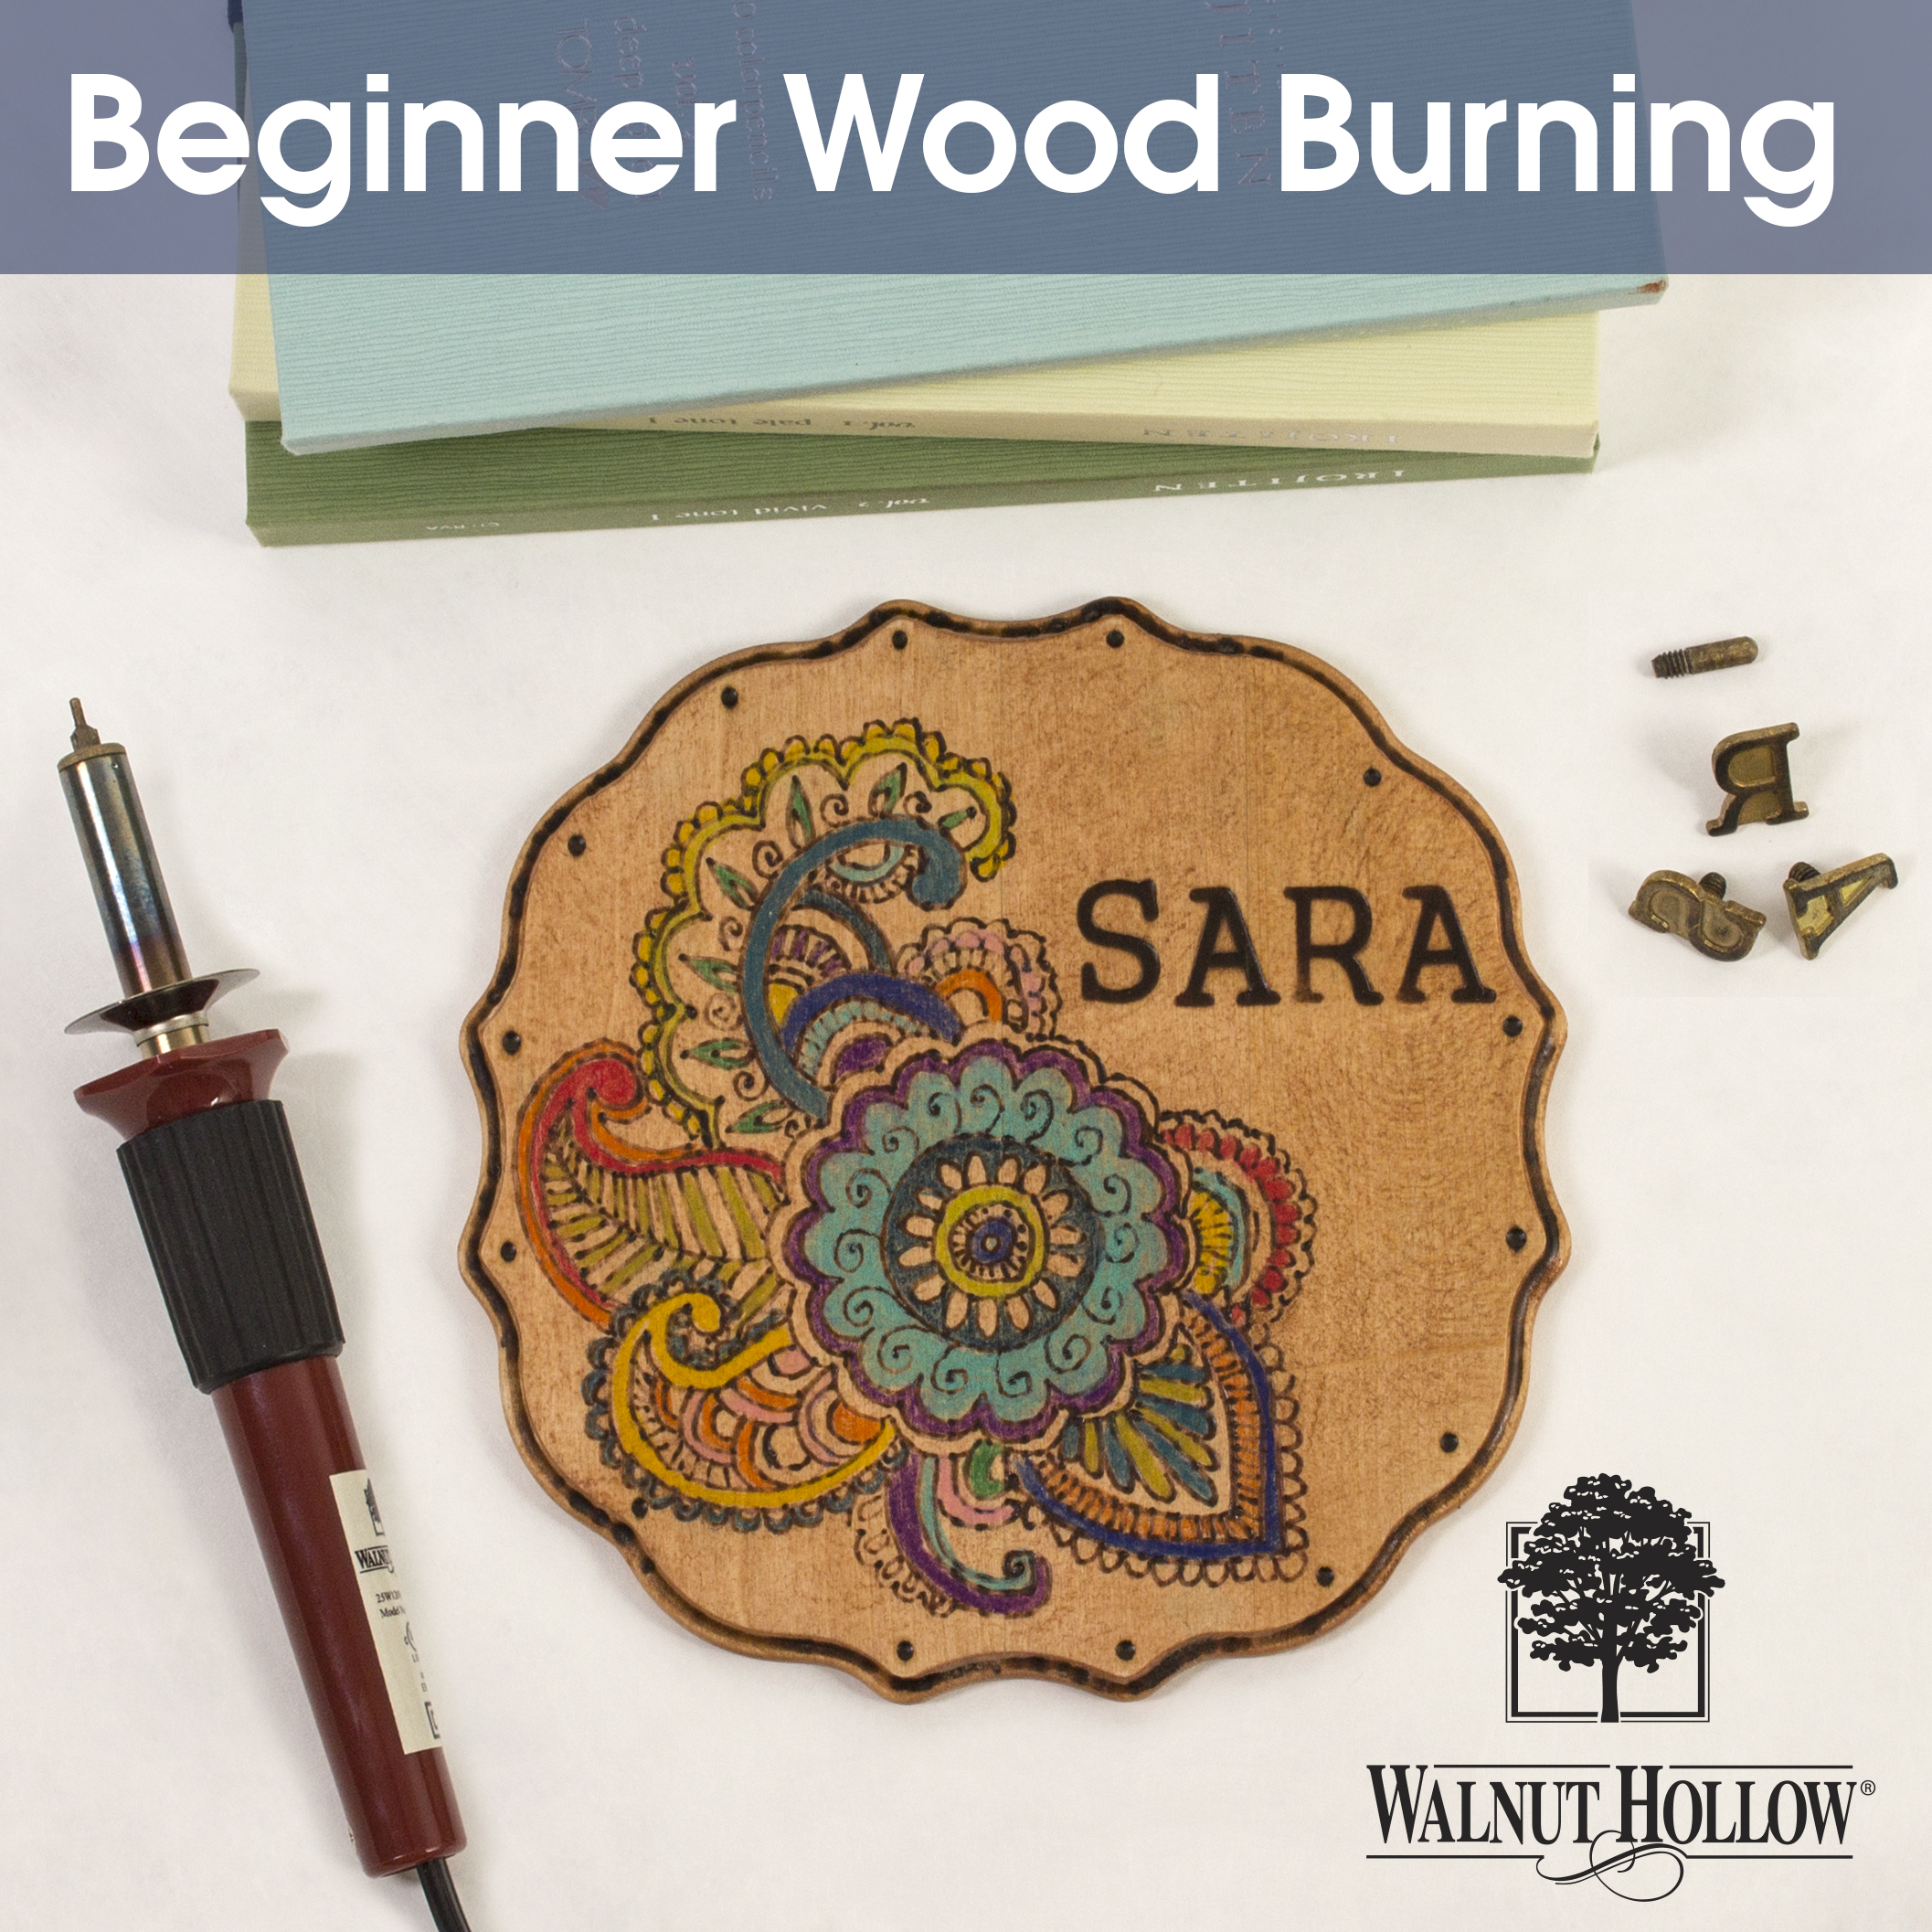 diy wood burning projects for beginners wooden pdf easy plans to